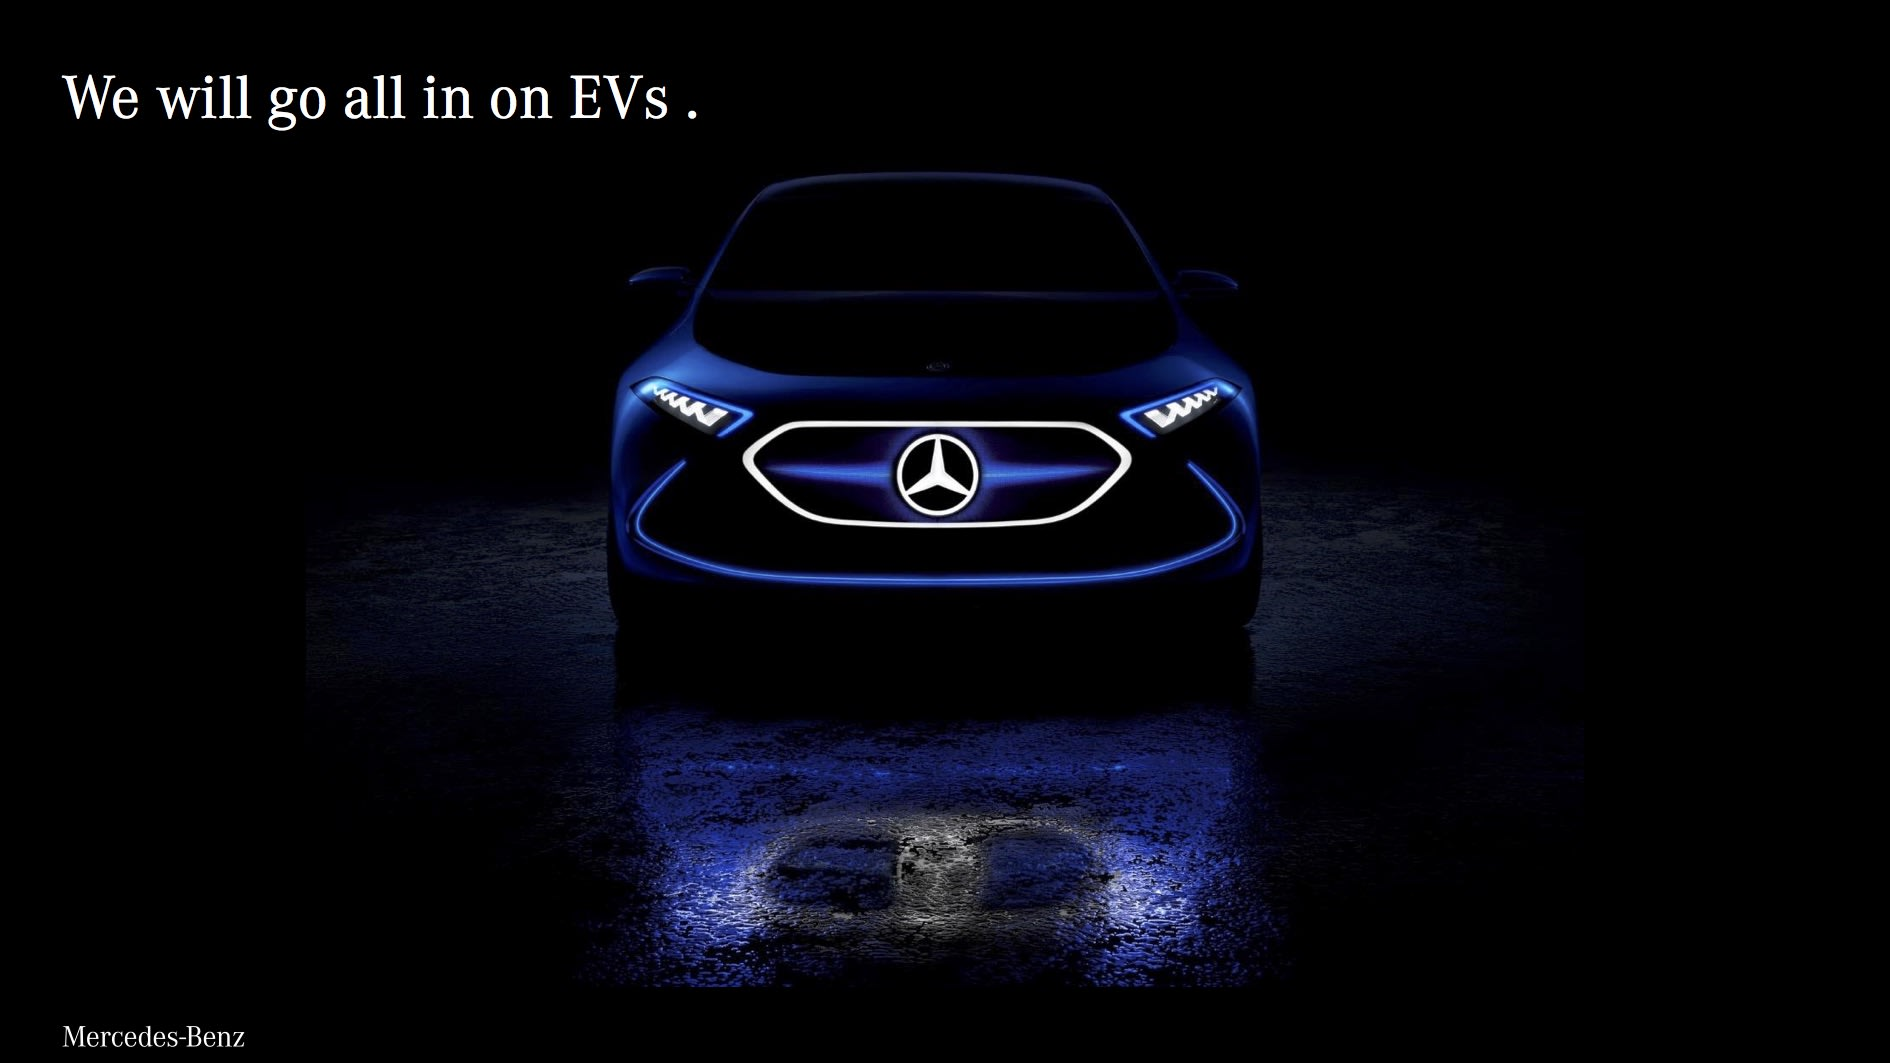 Mercedes Benz Plans Electric Versions Of All Its Models By